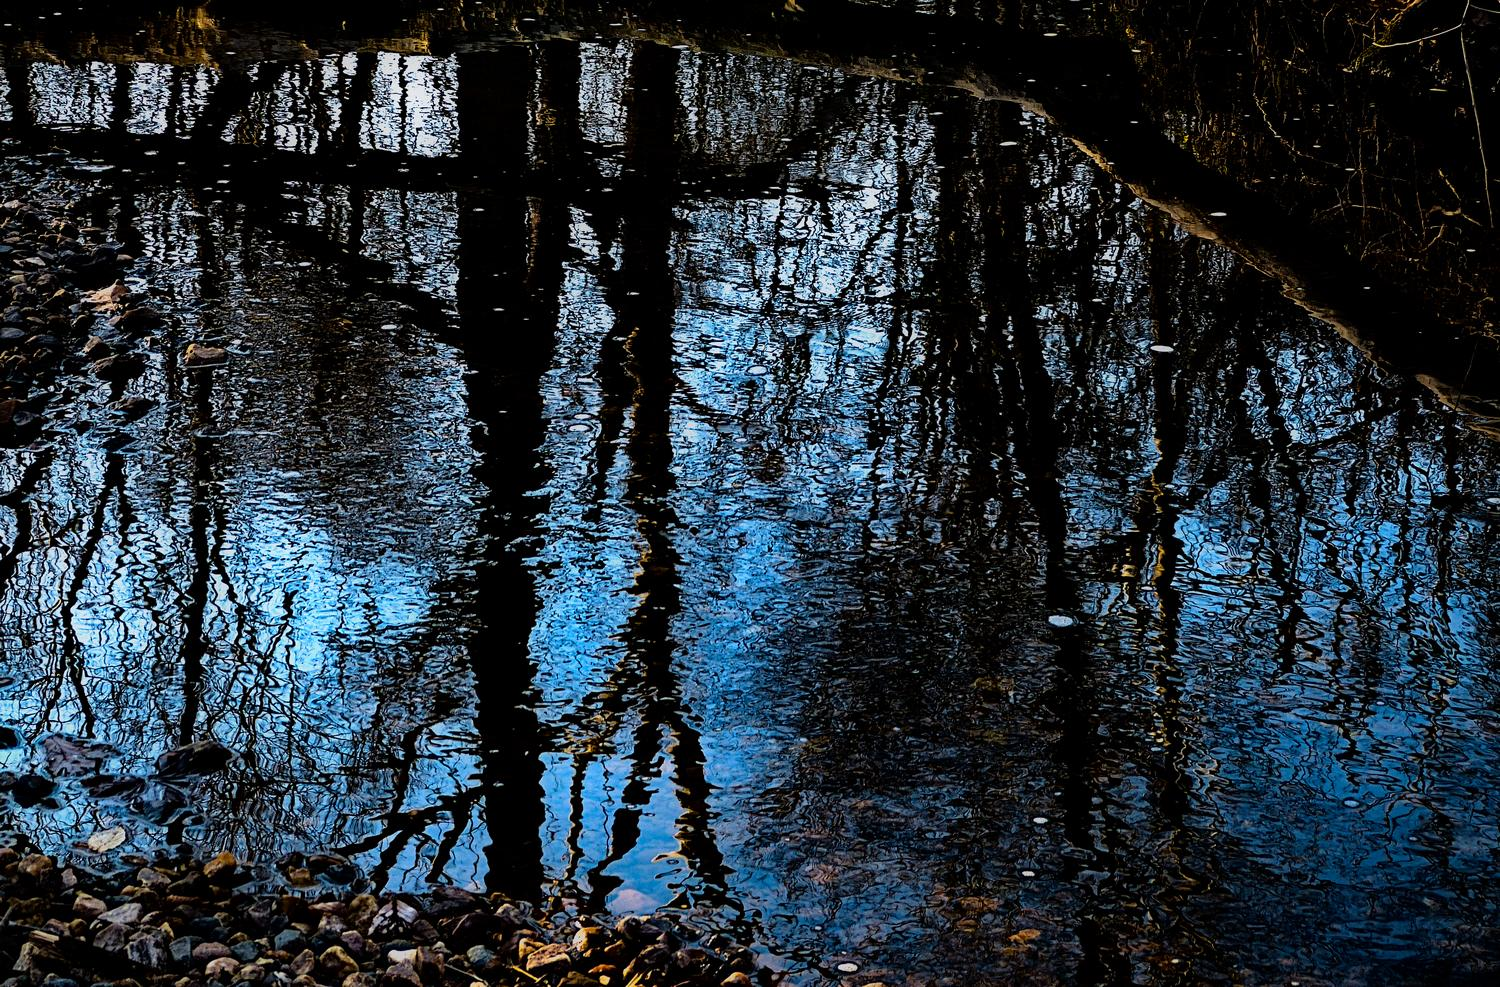 reflections - Trees in the stream <br>--- Click to see ORIGINAL --- - -  Panasonic DMC-FZ150 - post processing - Tony Karp, design, art, photography, techno-impressionist, techno-impressionism, aerial photography , drone , drones , dji , mavic pro , video , 3D printing - Books -